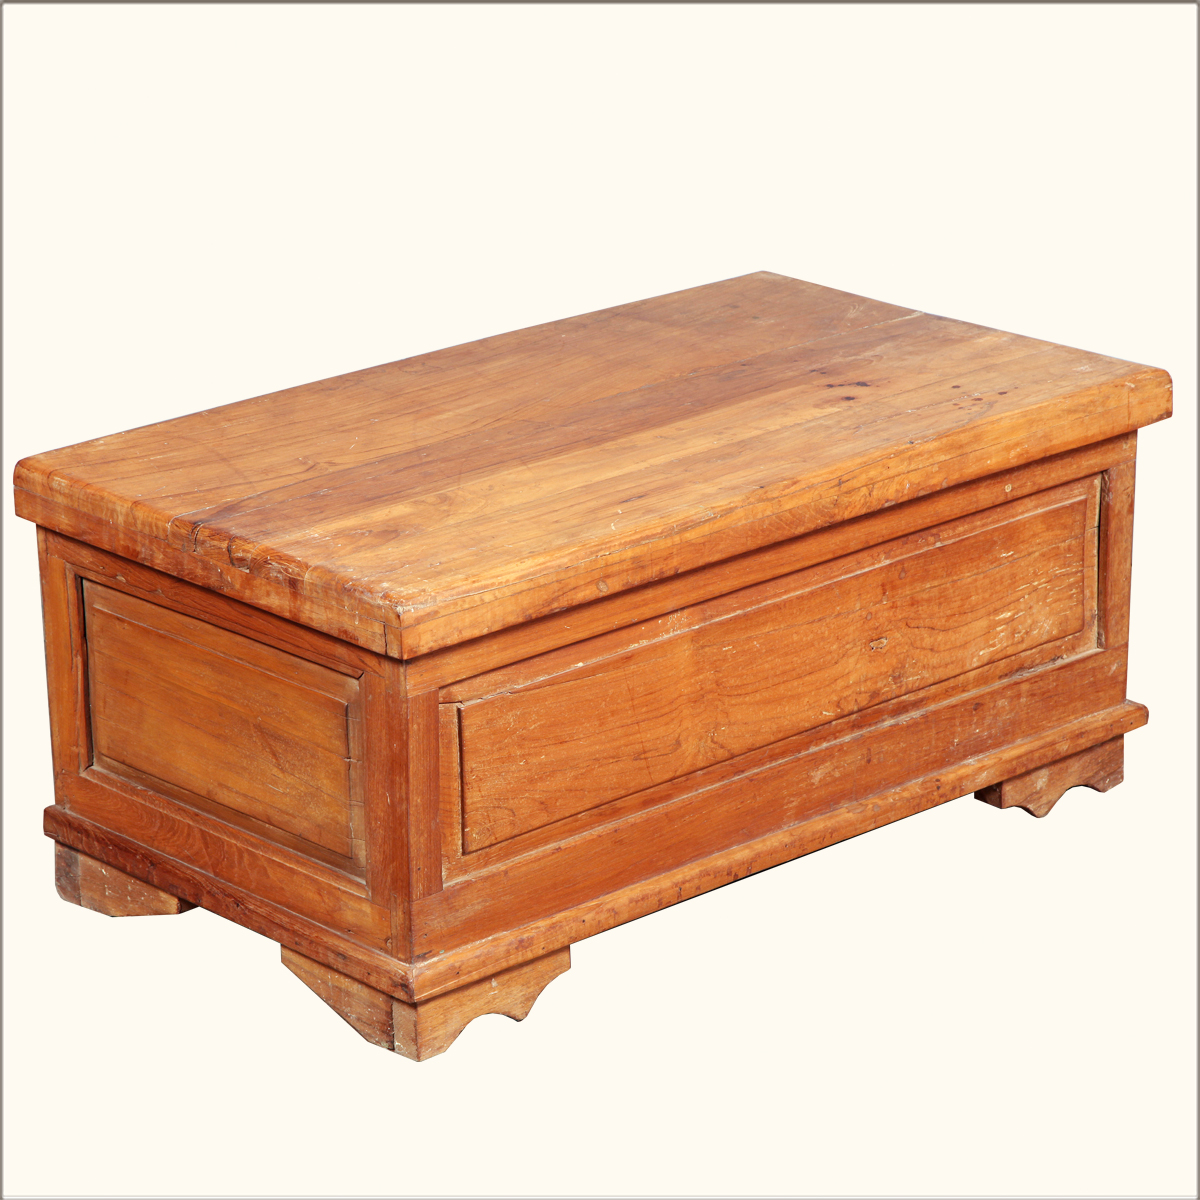 Shaker reclaimed wood rustic storage coffee table chest hope box trunk furniture ebay Coffee table chest with storage